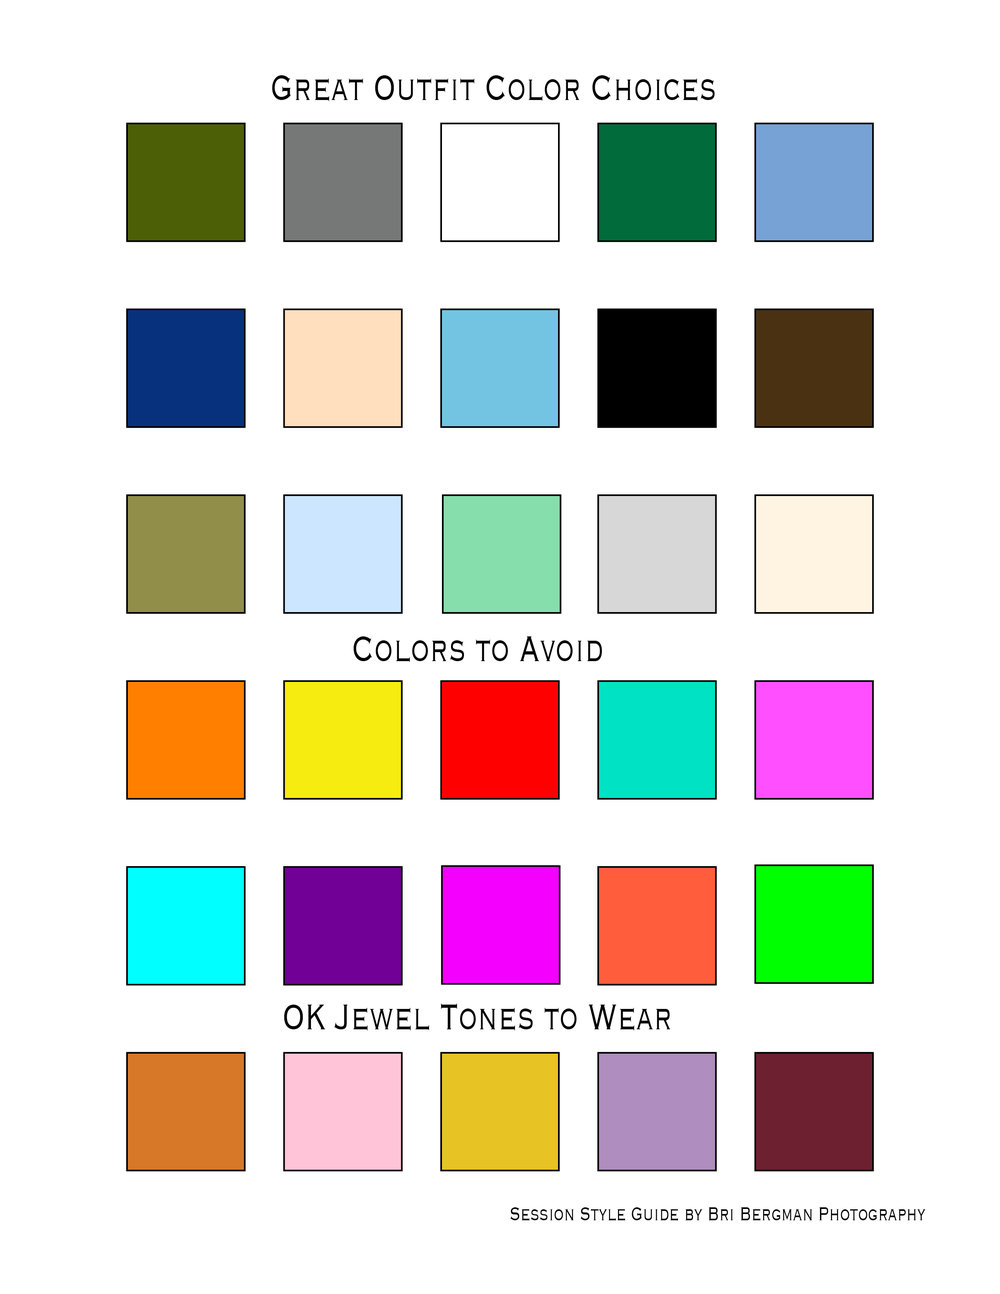 Outfit Color Guide for Photography Sessions by Bri Bergman Photography.jpg